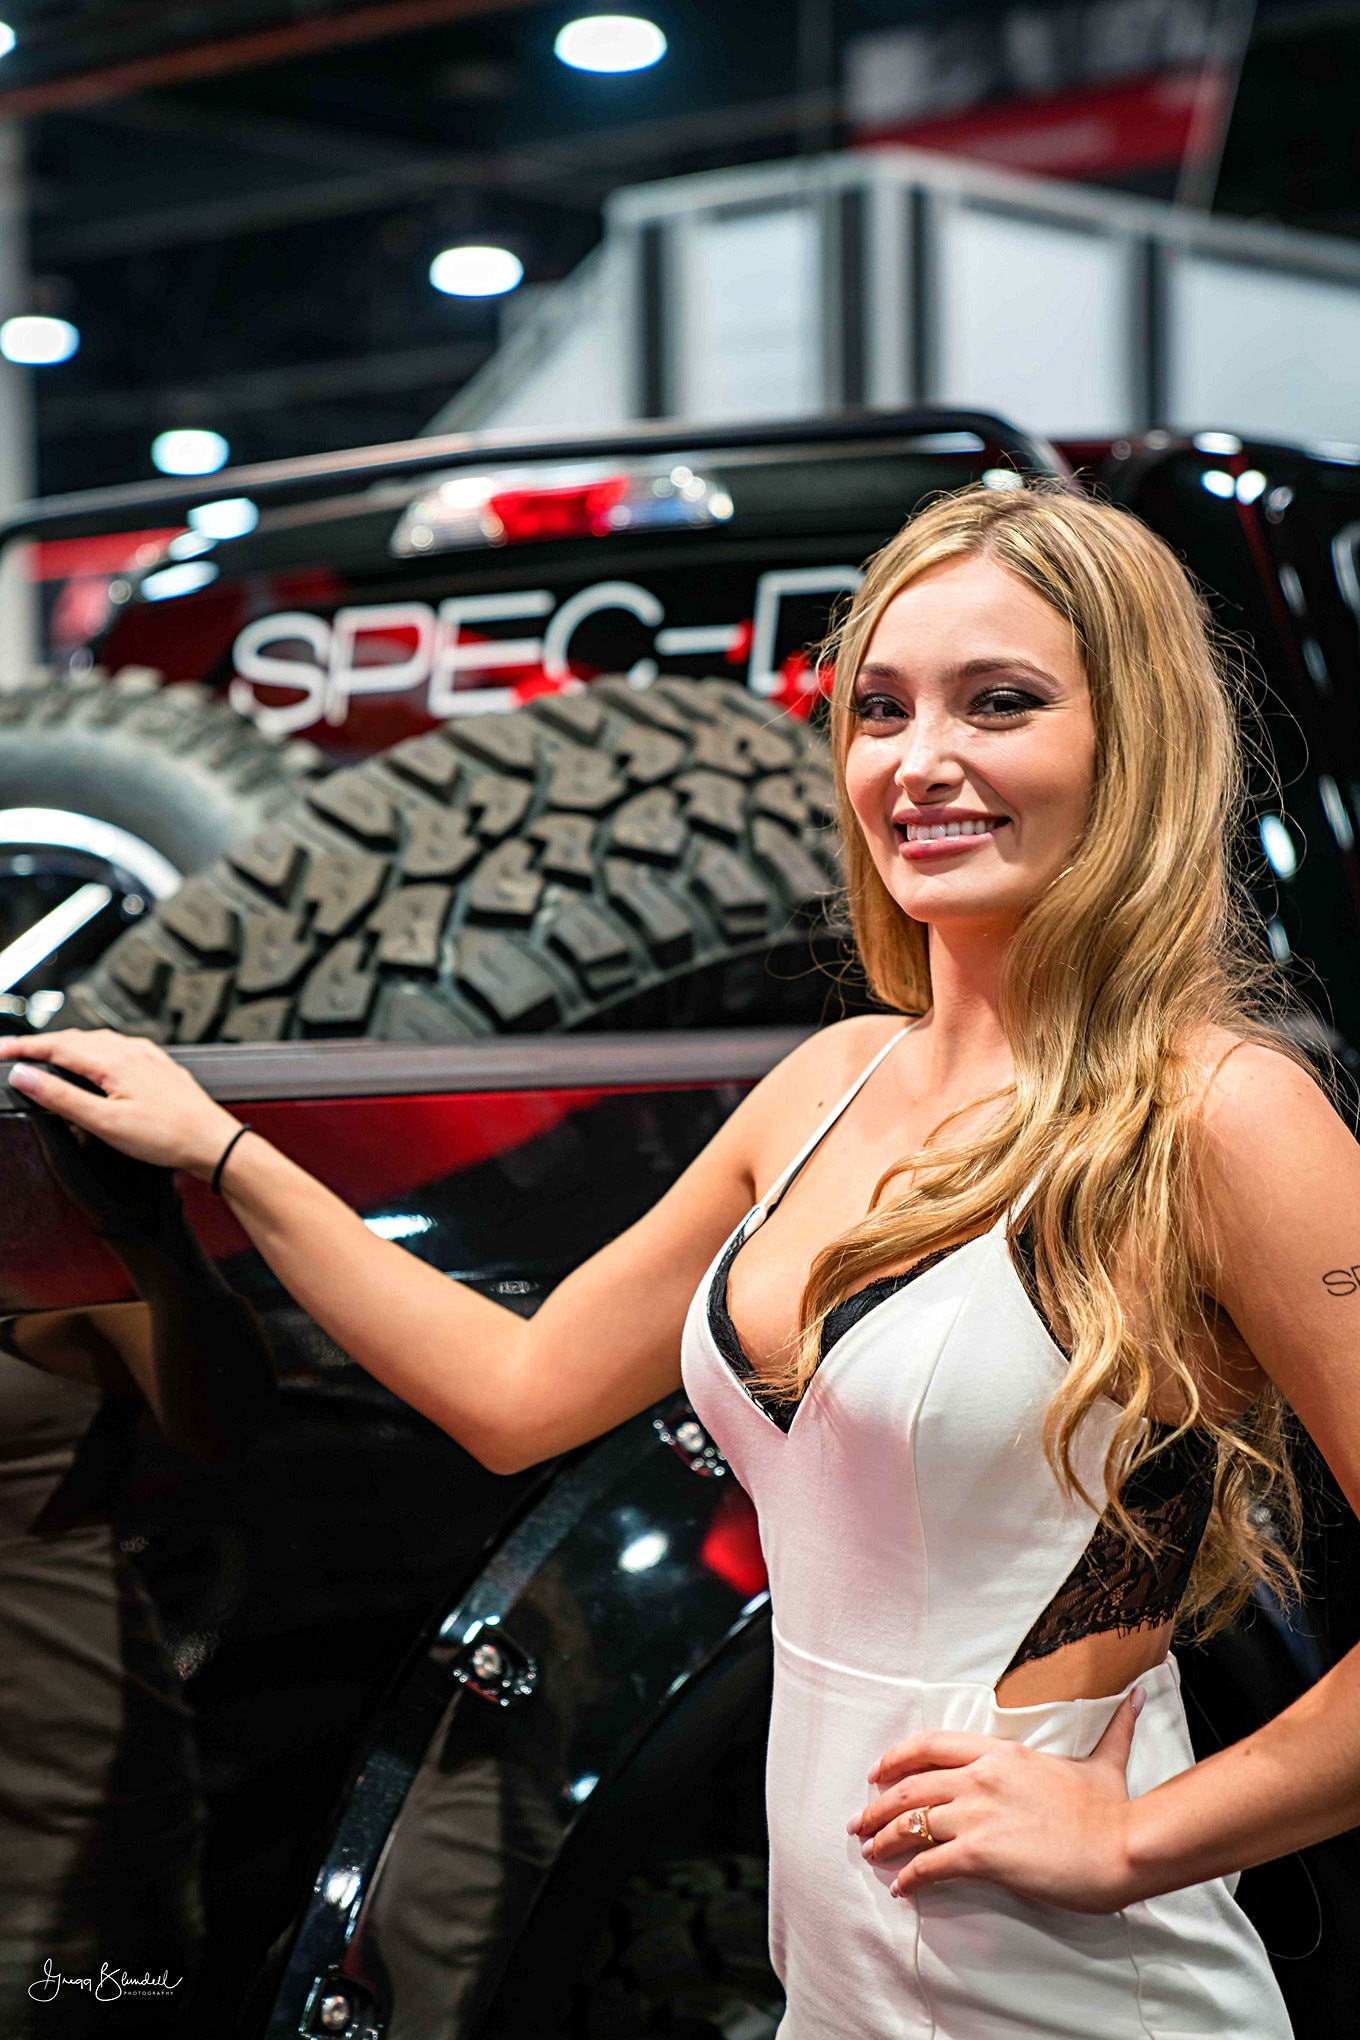 Sema 2016 Girls Booth Spokesperson 055